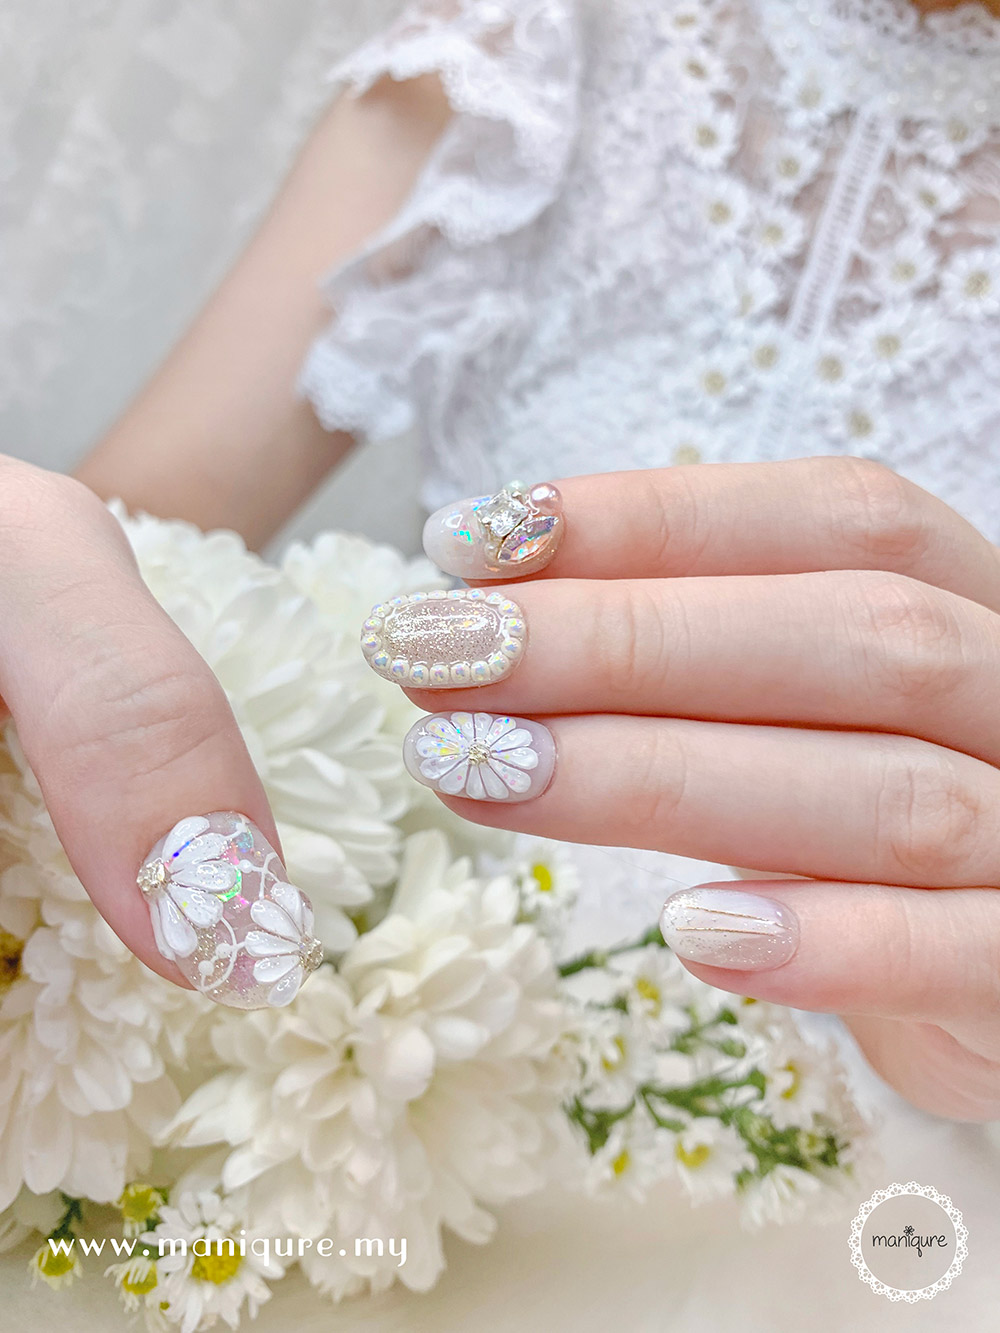 Daisy Nails 雏菊美甲